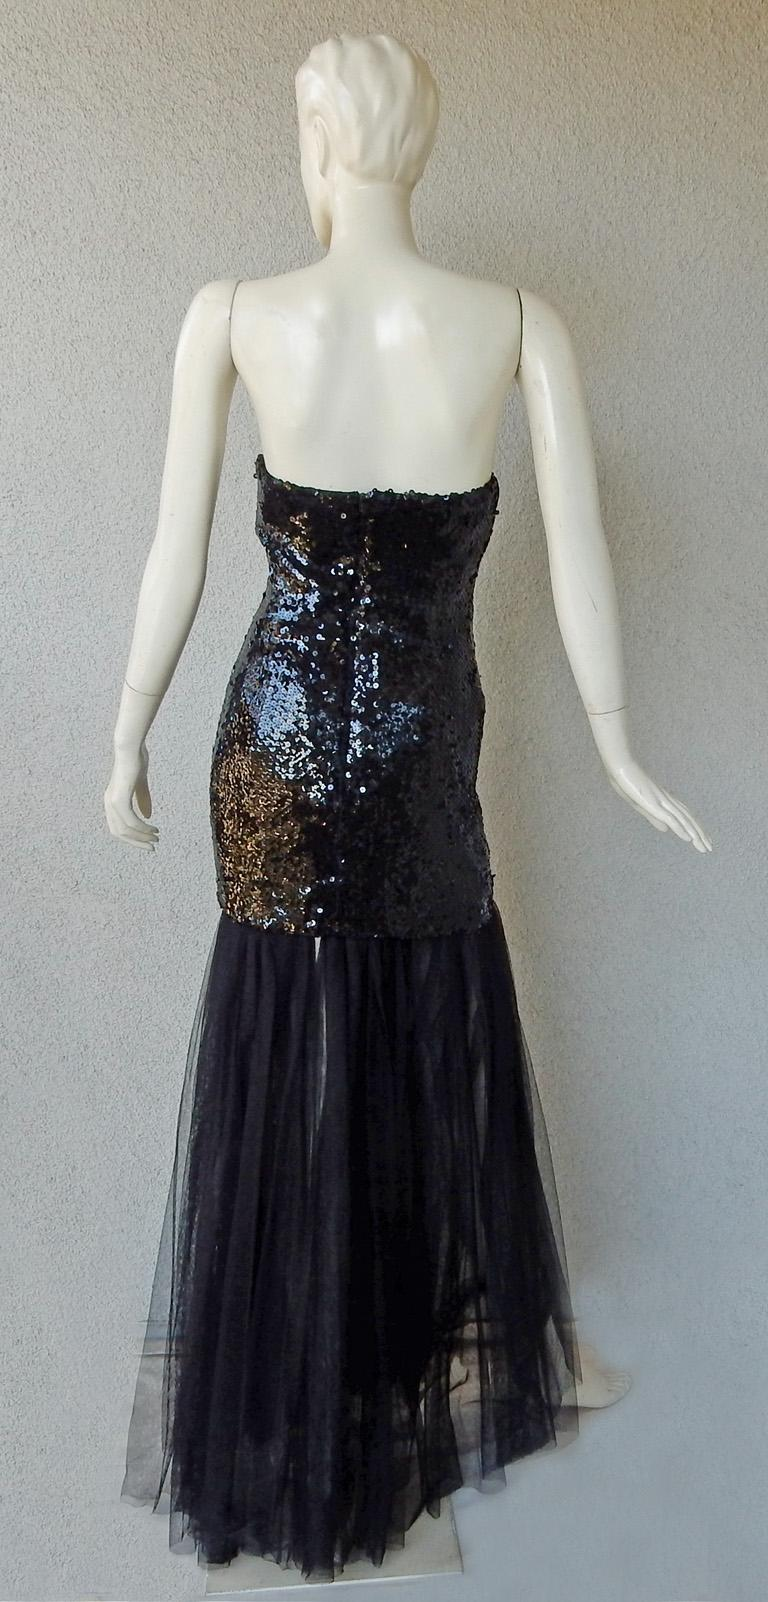 Black Thierry Mugler Couture Old Hollywood Glamour 30's Style Dress Gown For Sale